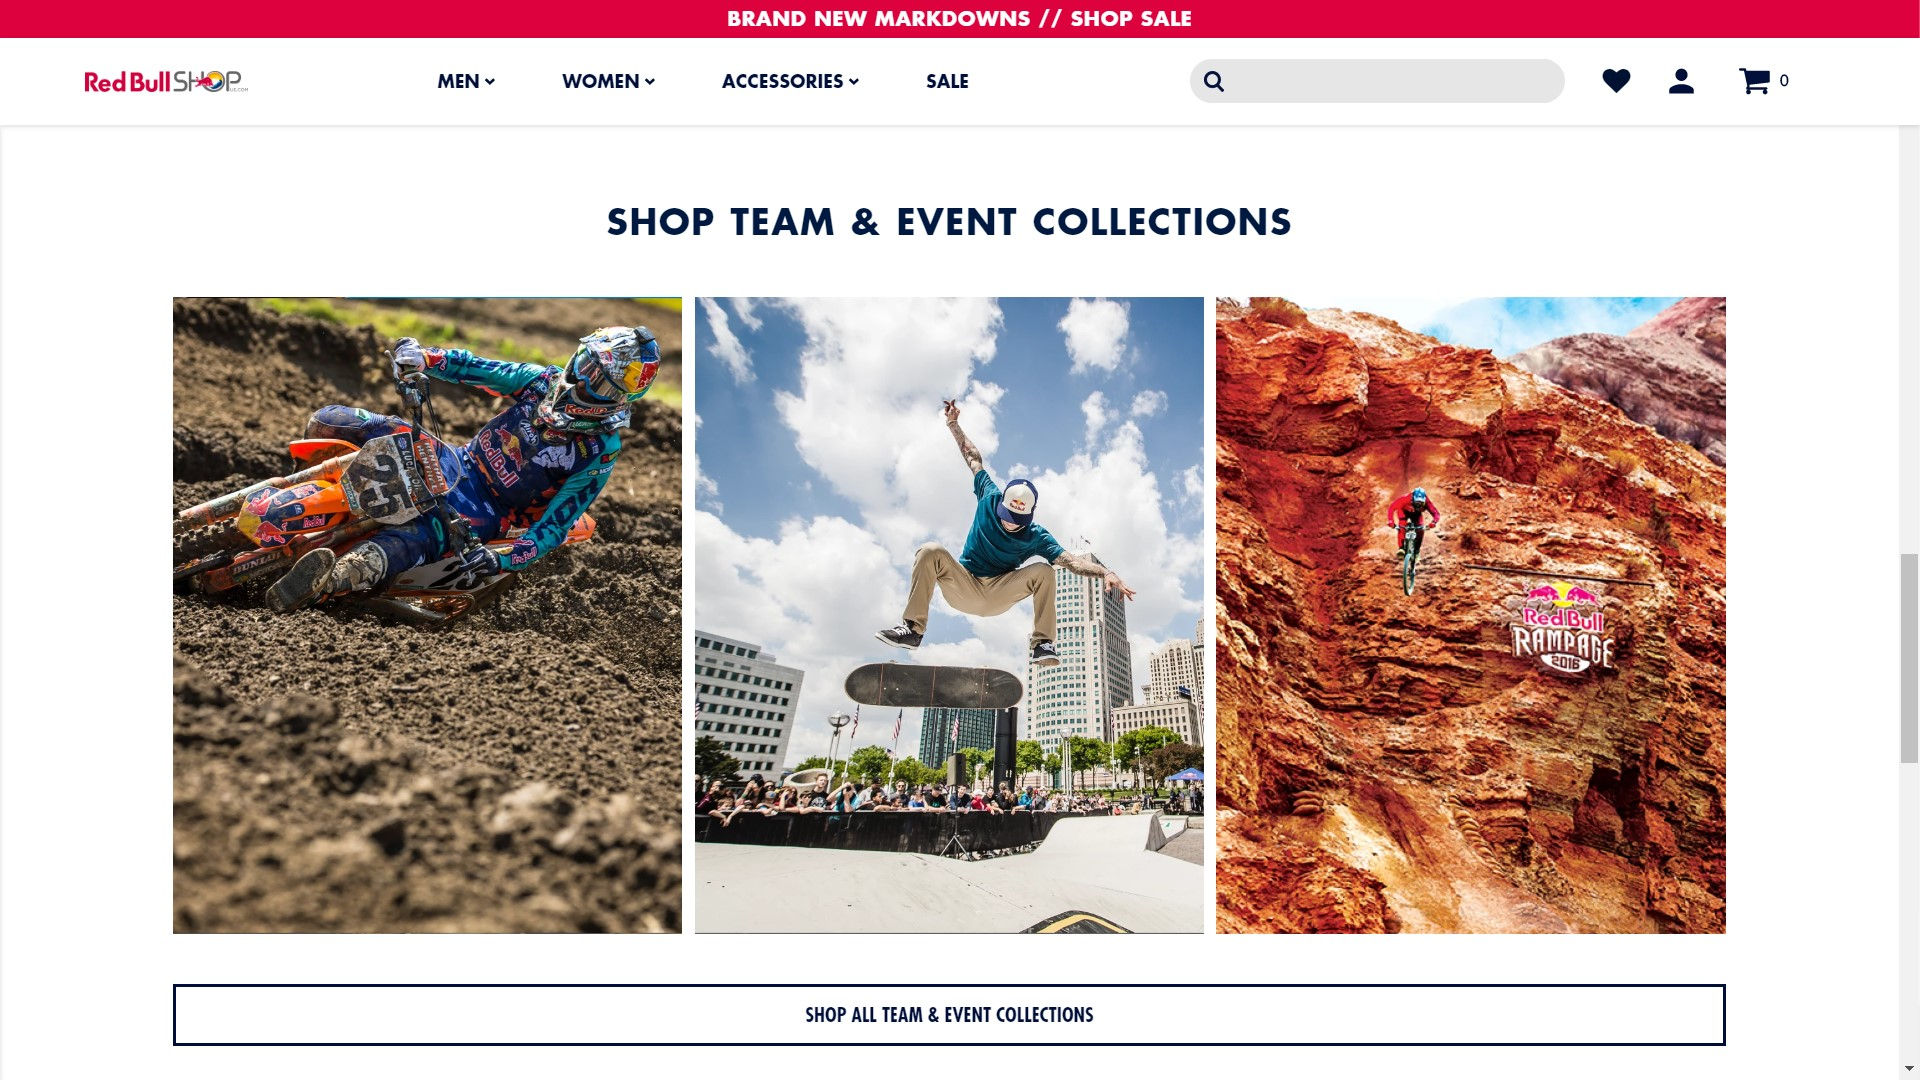 Red Bull Shop US Shopify store page